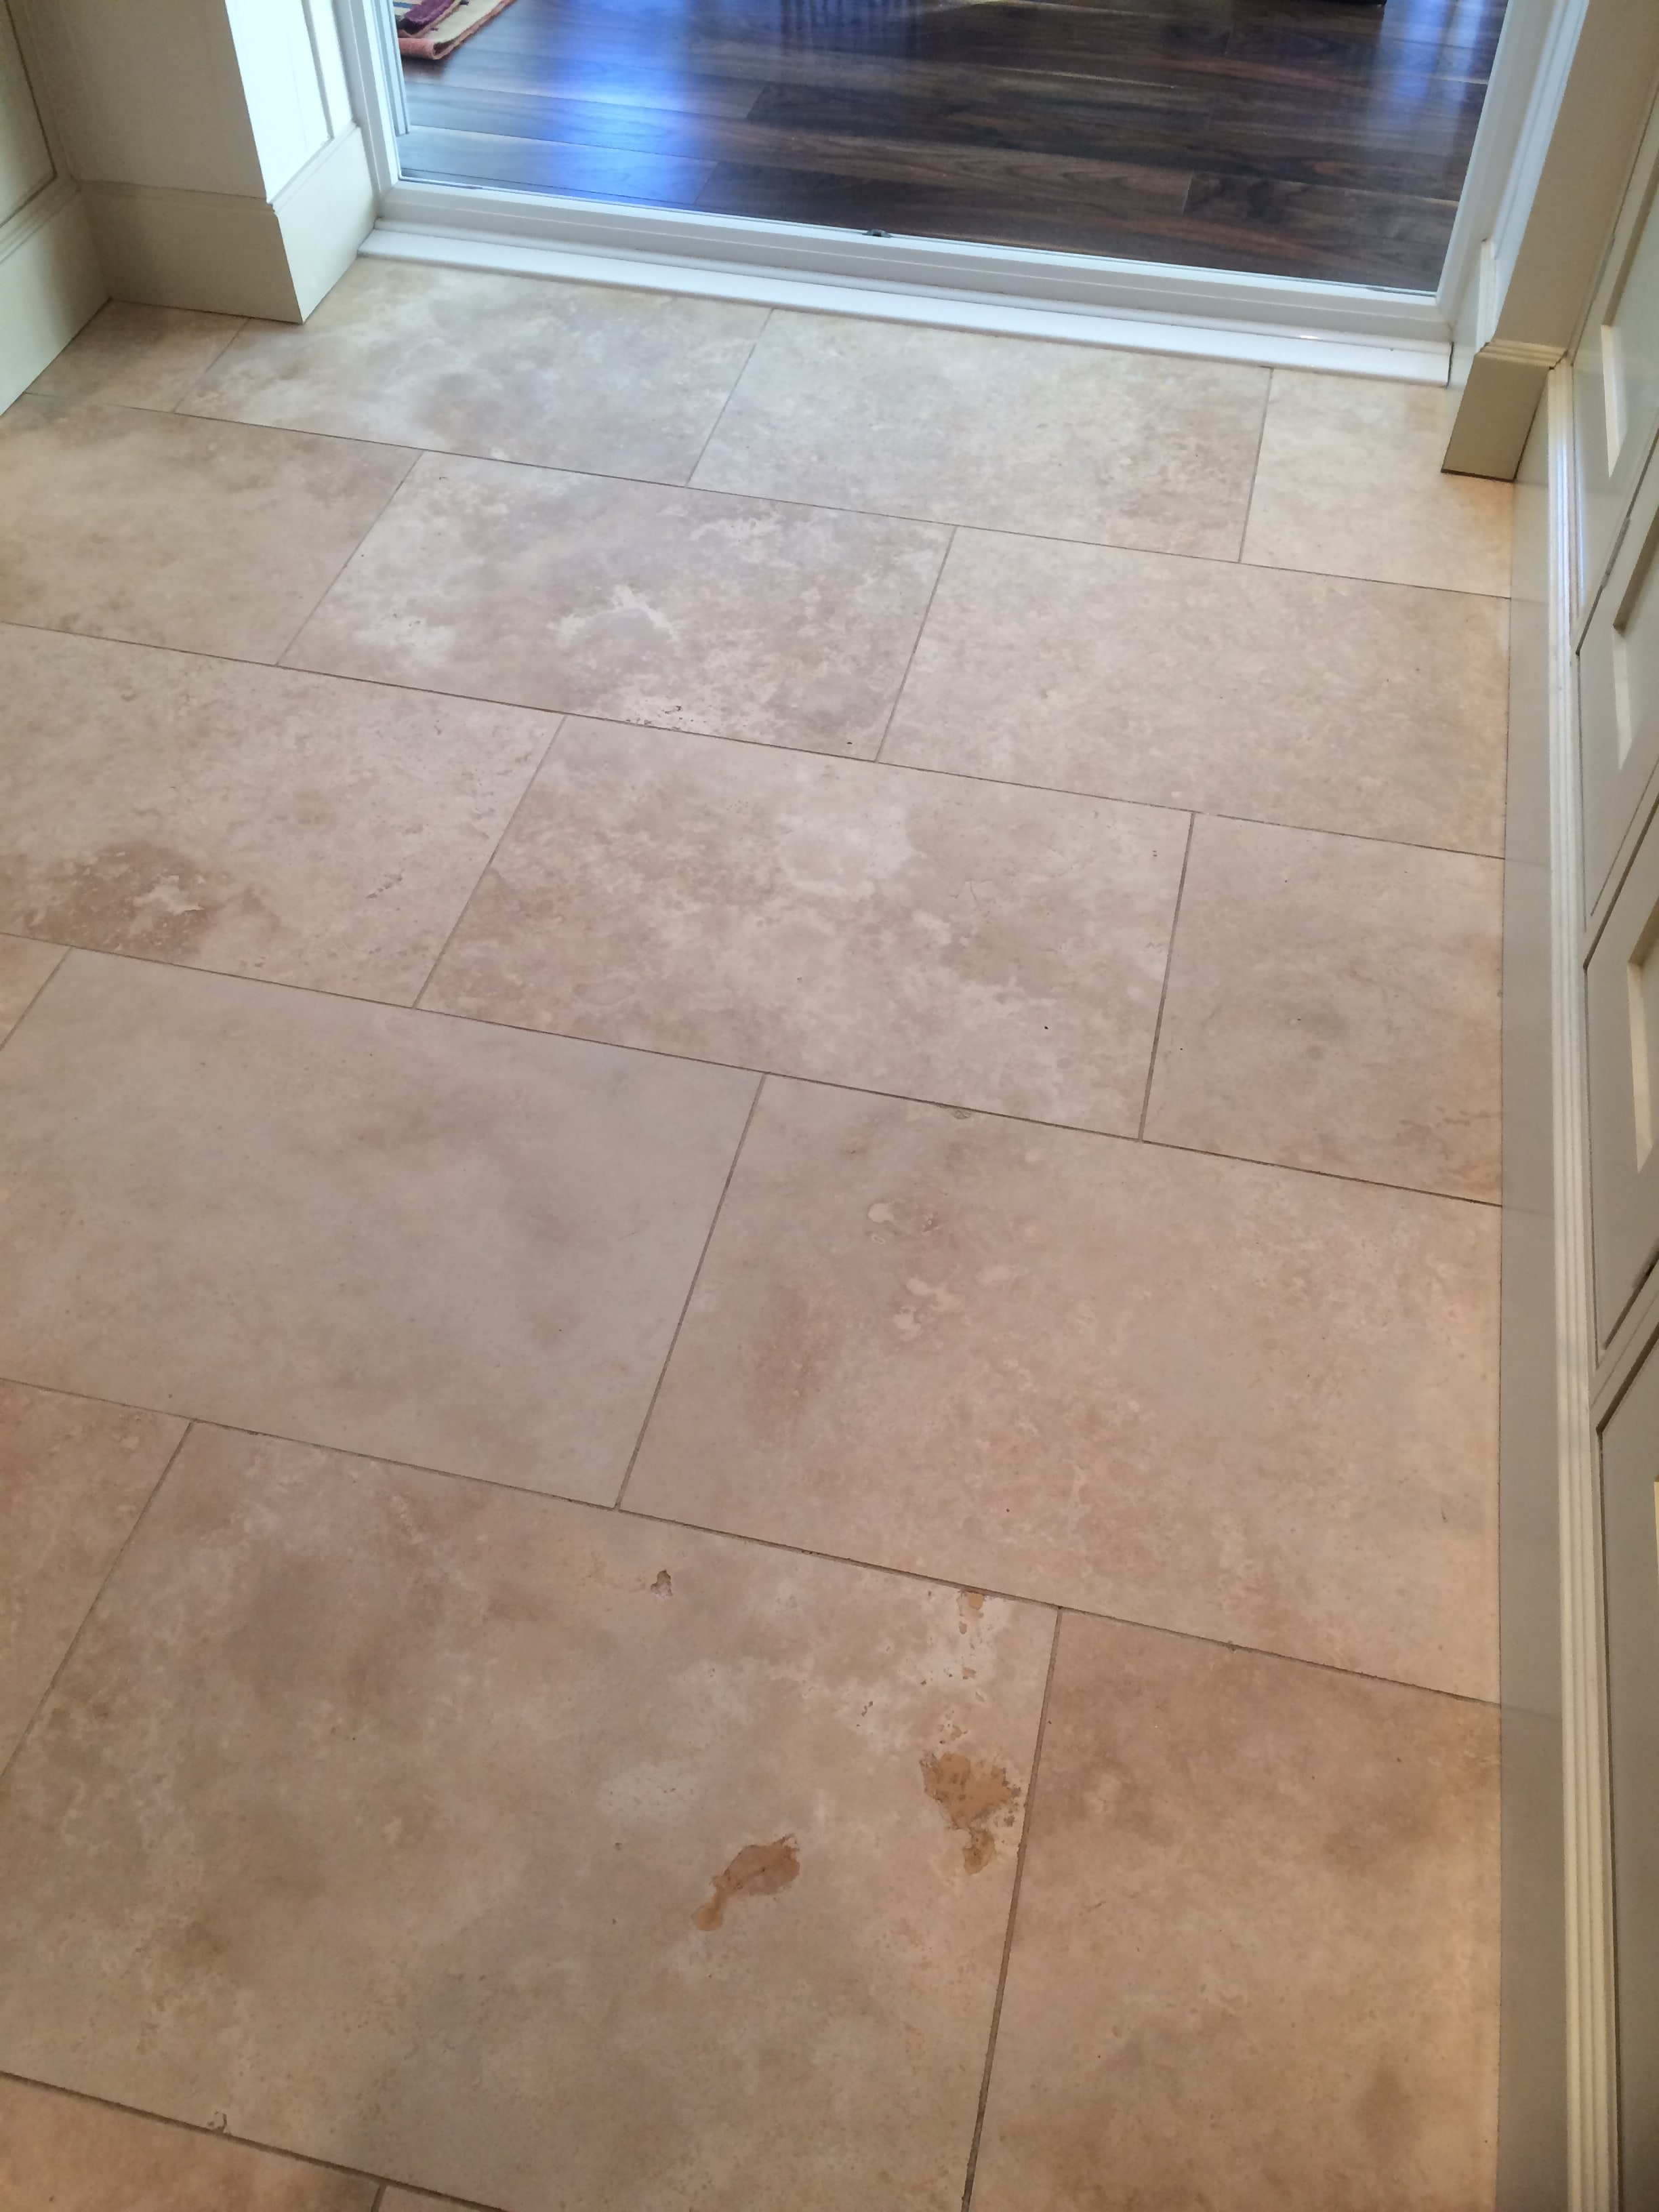 Travertine Tiled Floor Before Polishing Blackburn